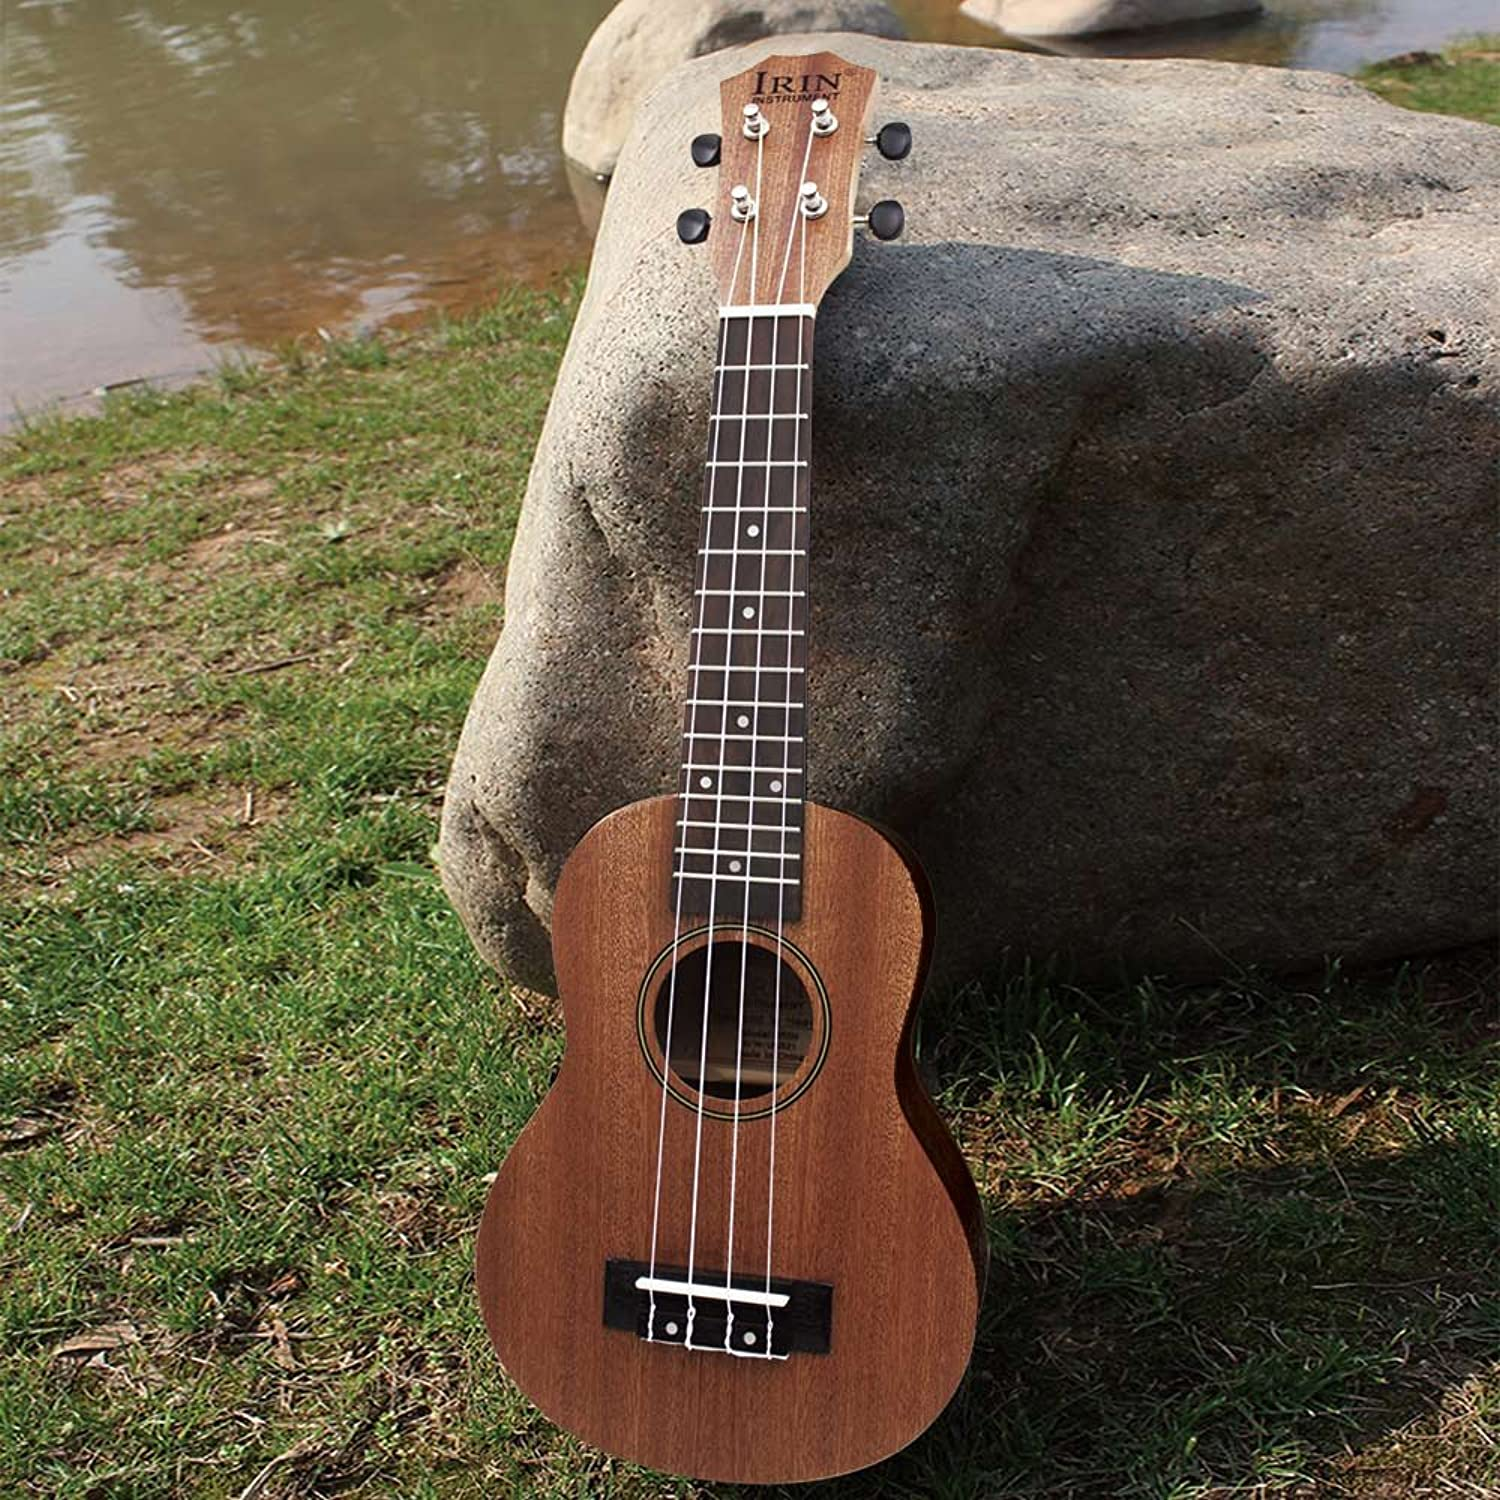 XuBa 21  Ukulele 4 Strings Acoustic Ukulele Stringed Musical Instrument